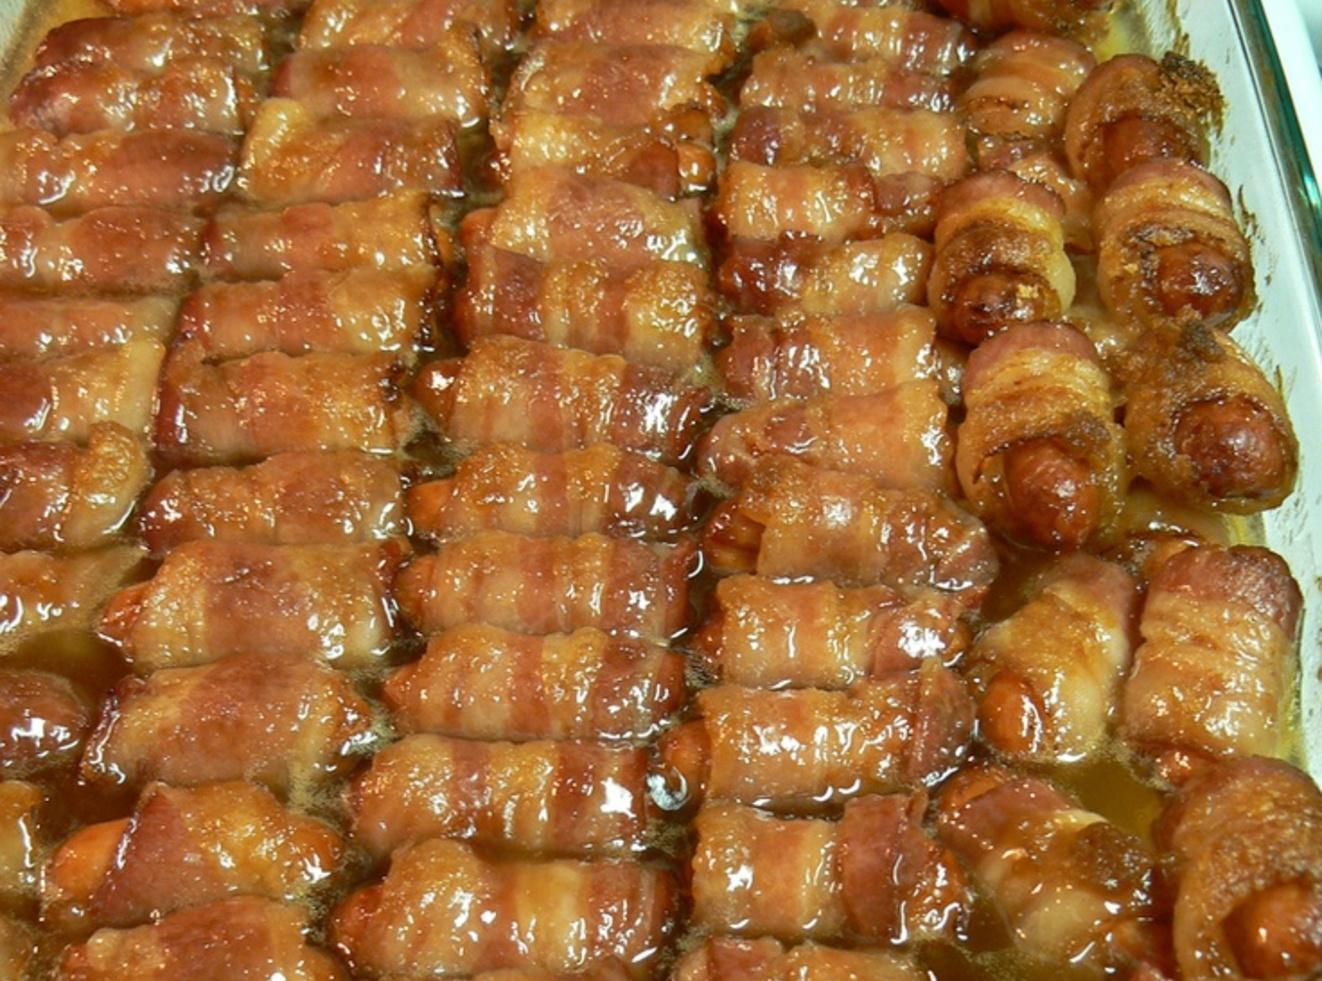 Bacon Wrapped Smokies with Brown Sugar and Butter Recipe 2 | Just A ...